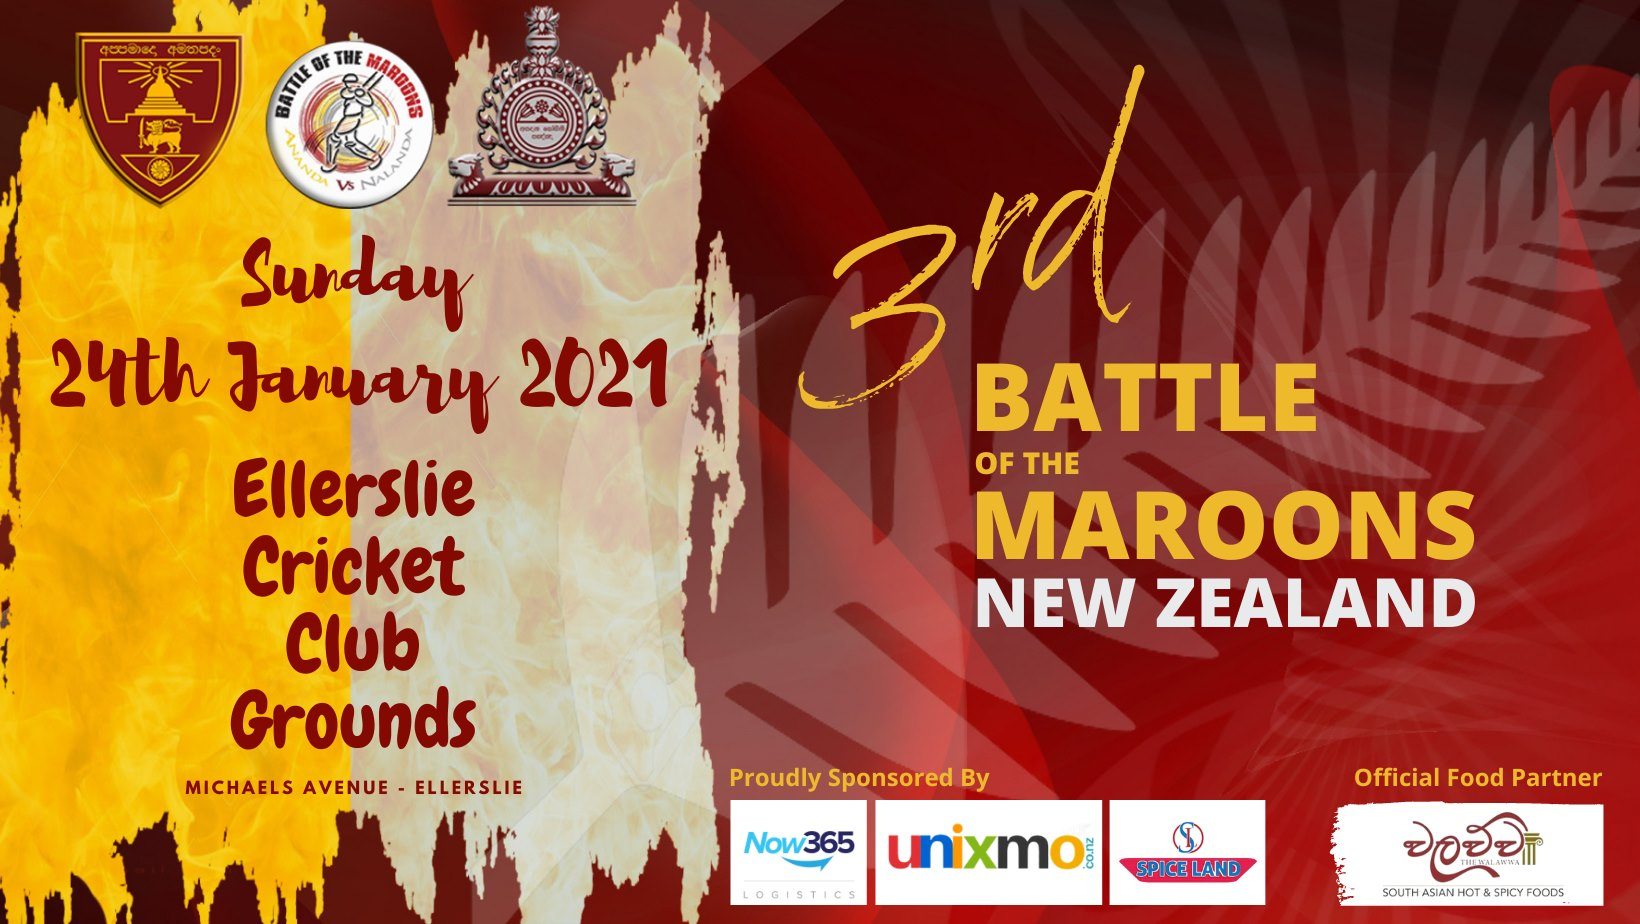 The 3rd Battle of the Maroons New Zealand